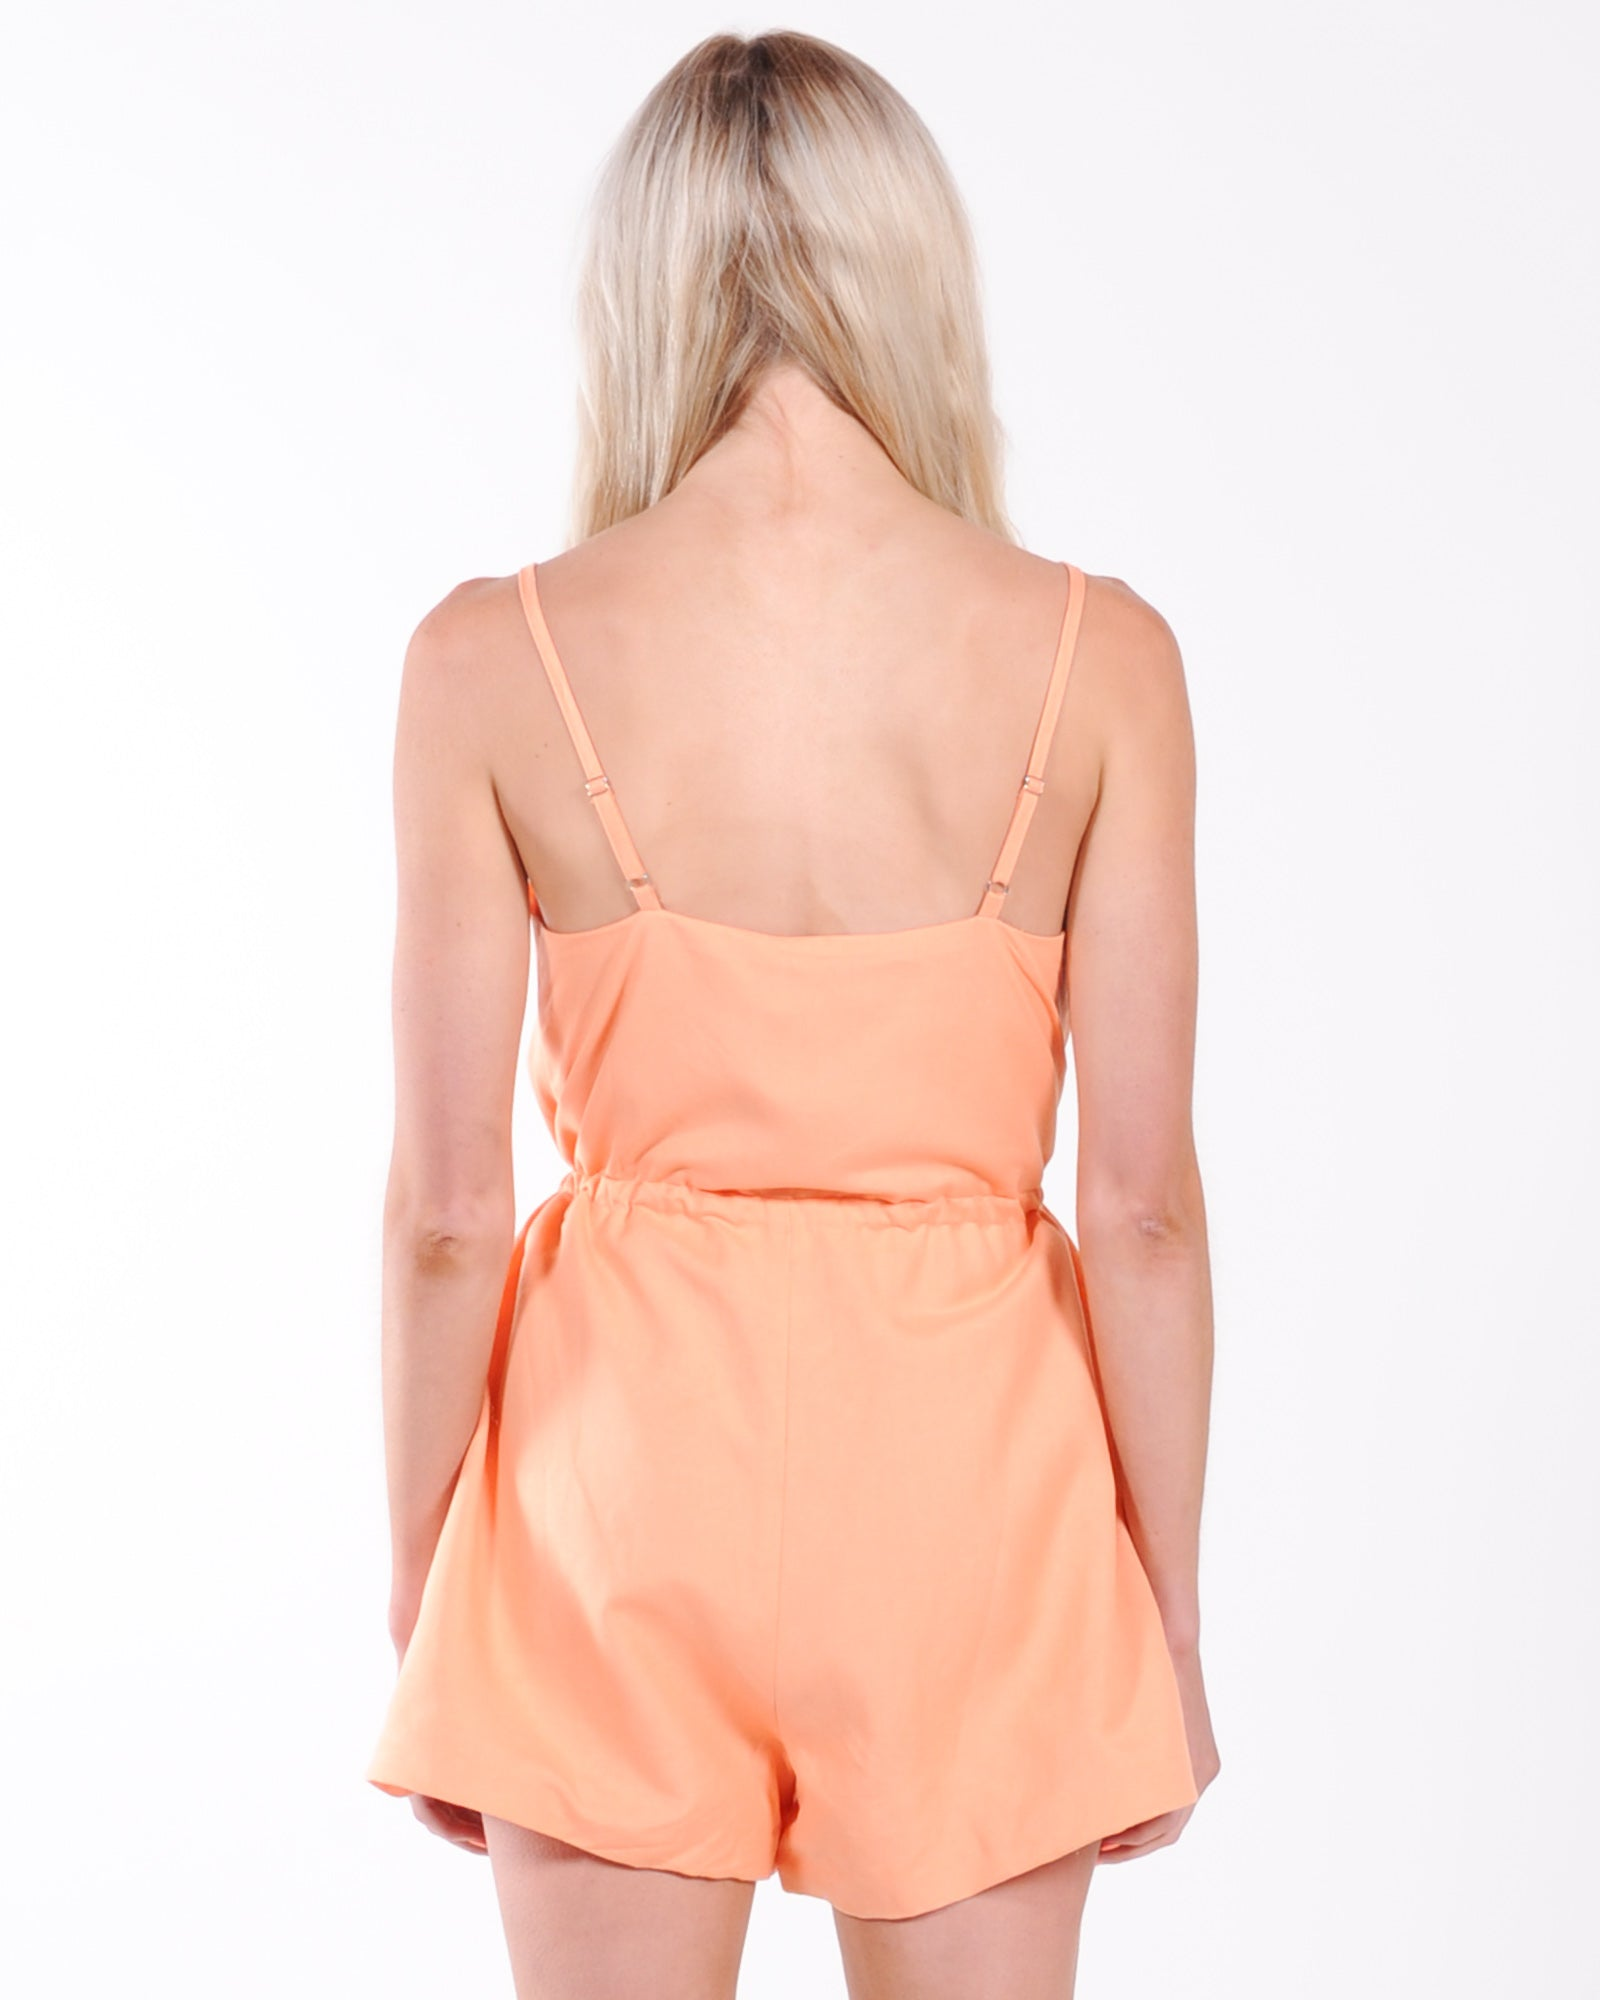 Madison The Label Penny Playsuit - Apricot